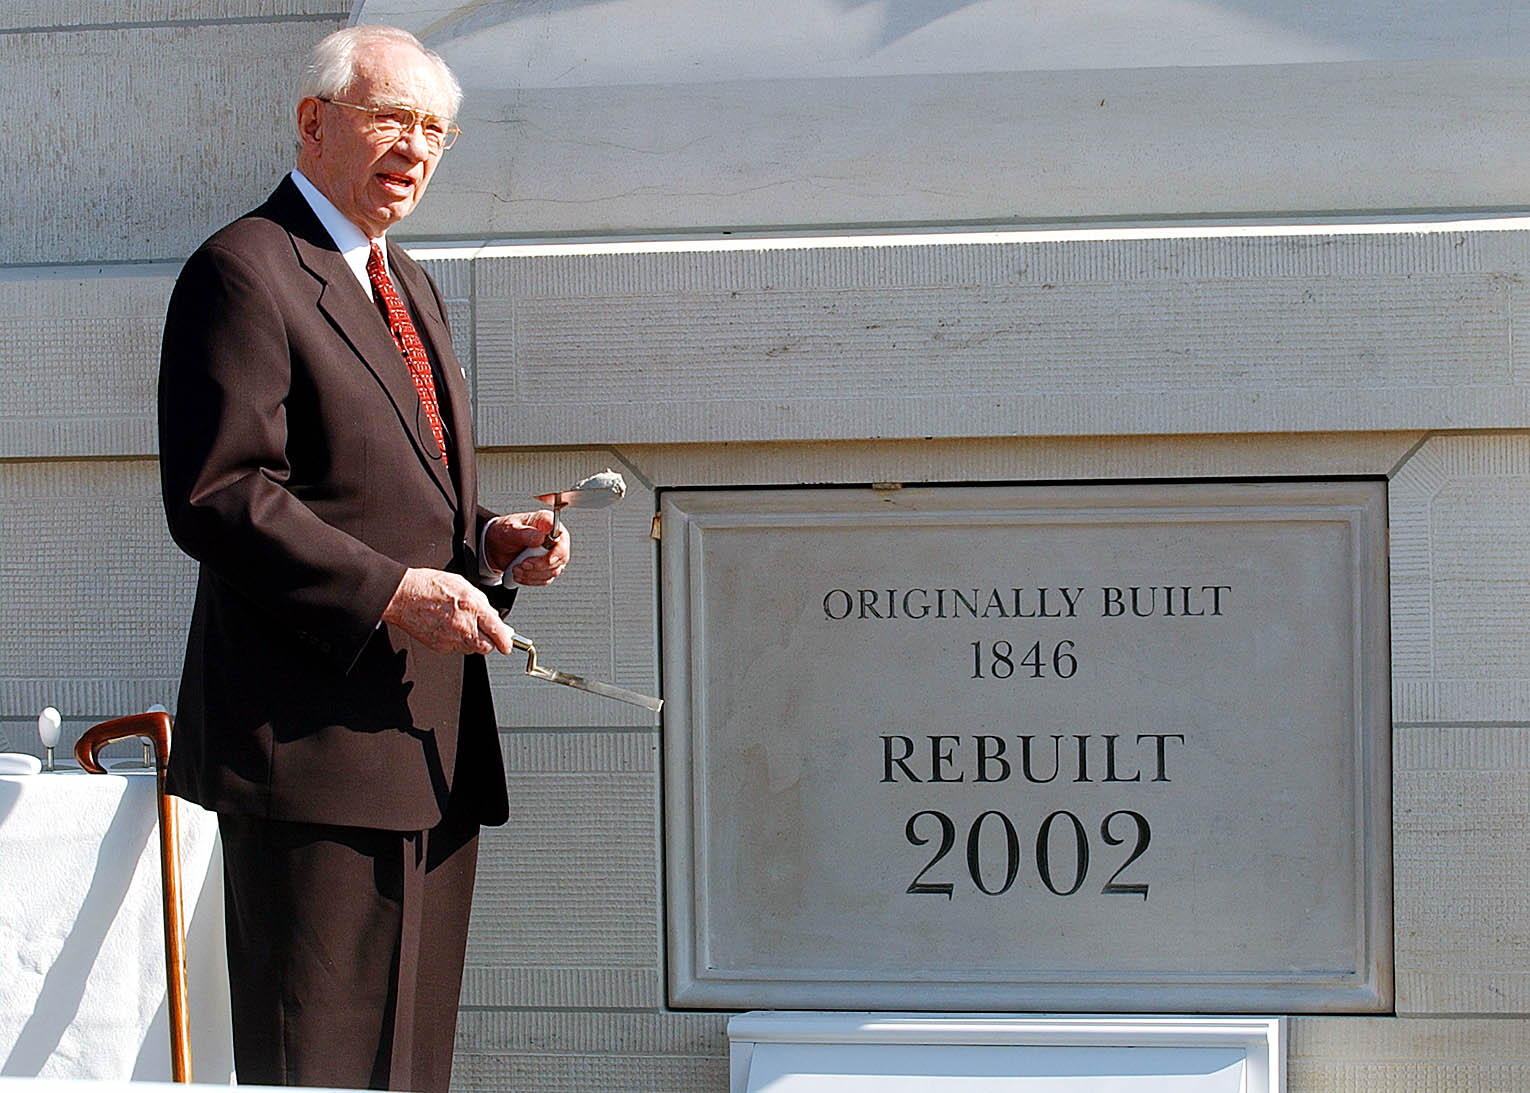 President Gordon B. Hinckley talks prior to applying mortar to the coverstone at the Nauvoo Illinois Temple June 27, 2002.